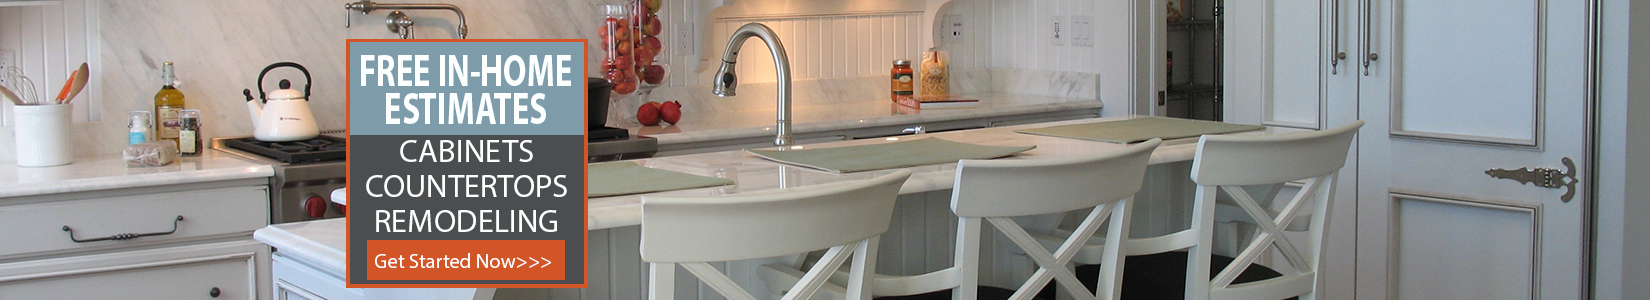 Free in home estimates for cabinets and countertops remodeling